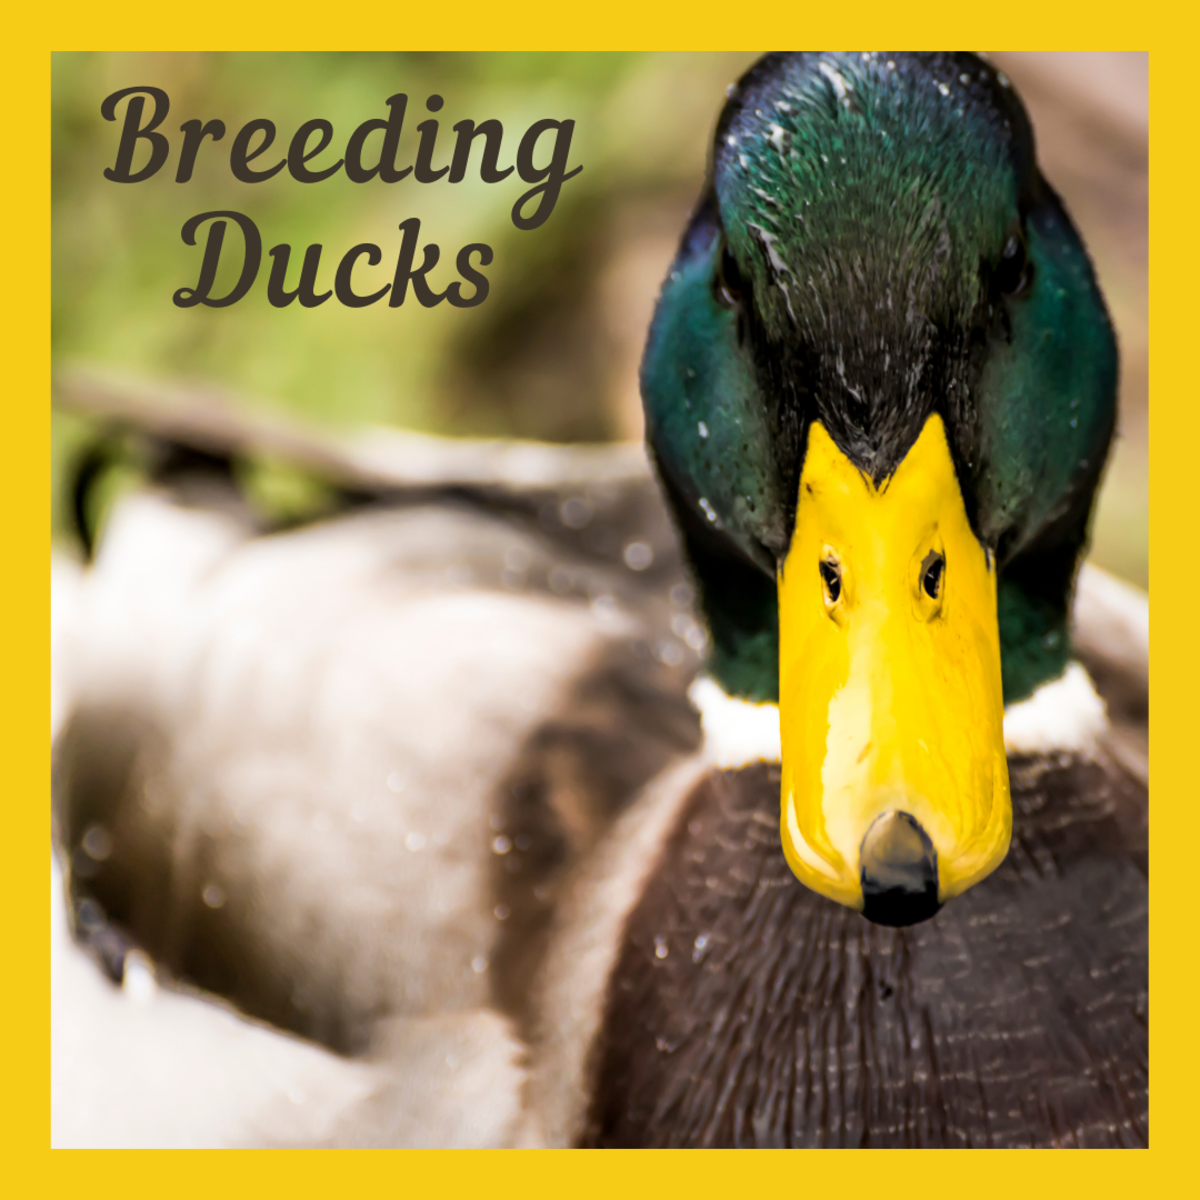 Learn how to breed ducks like a pro